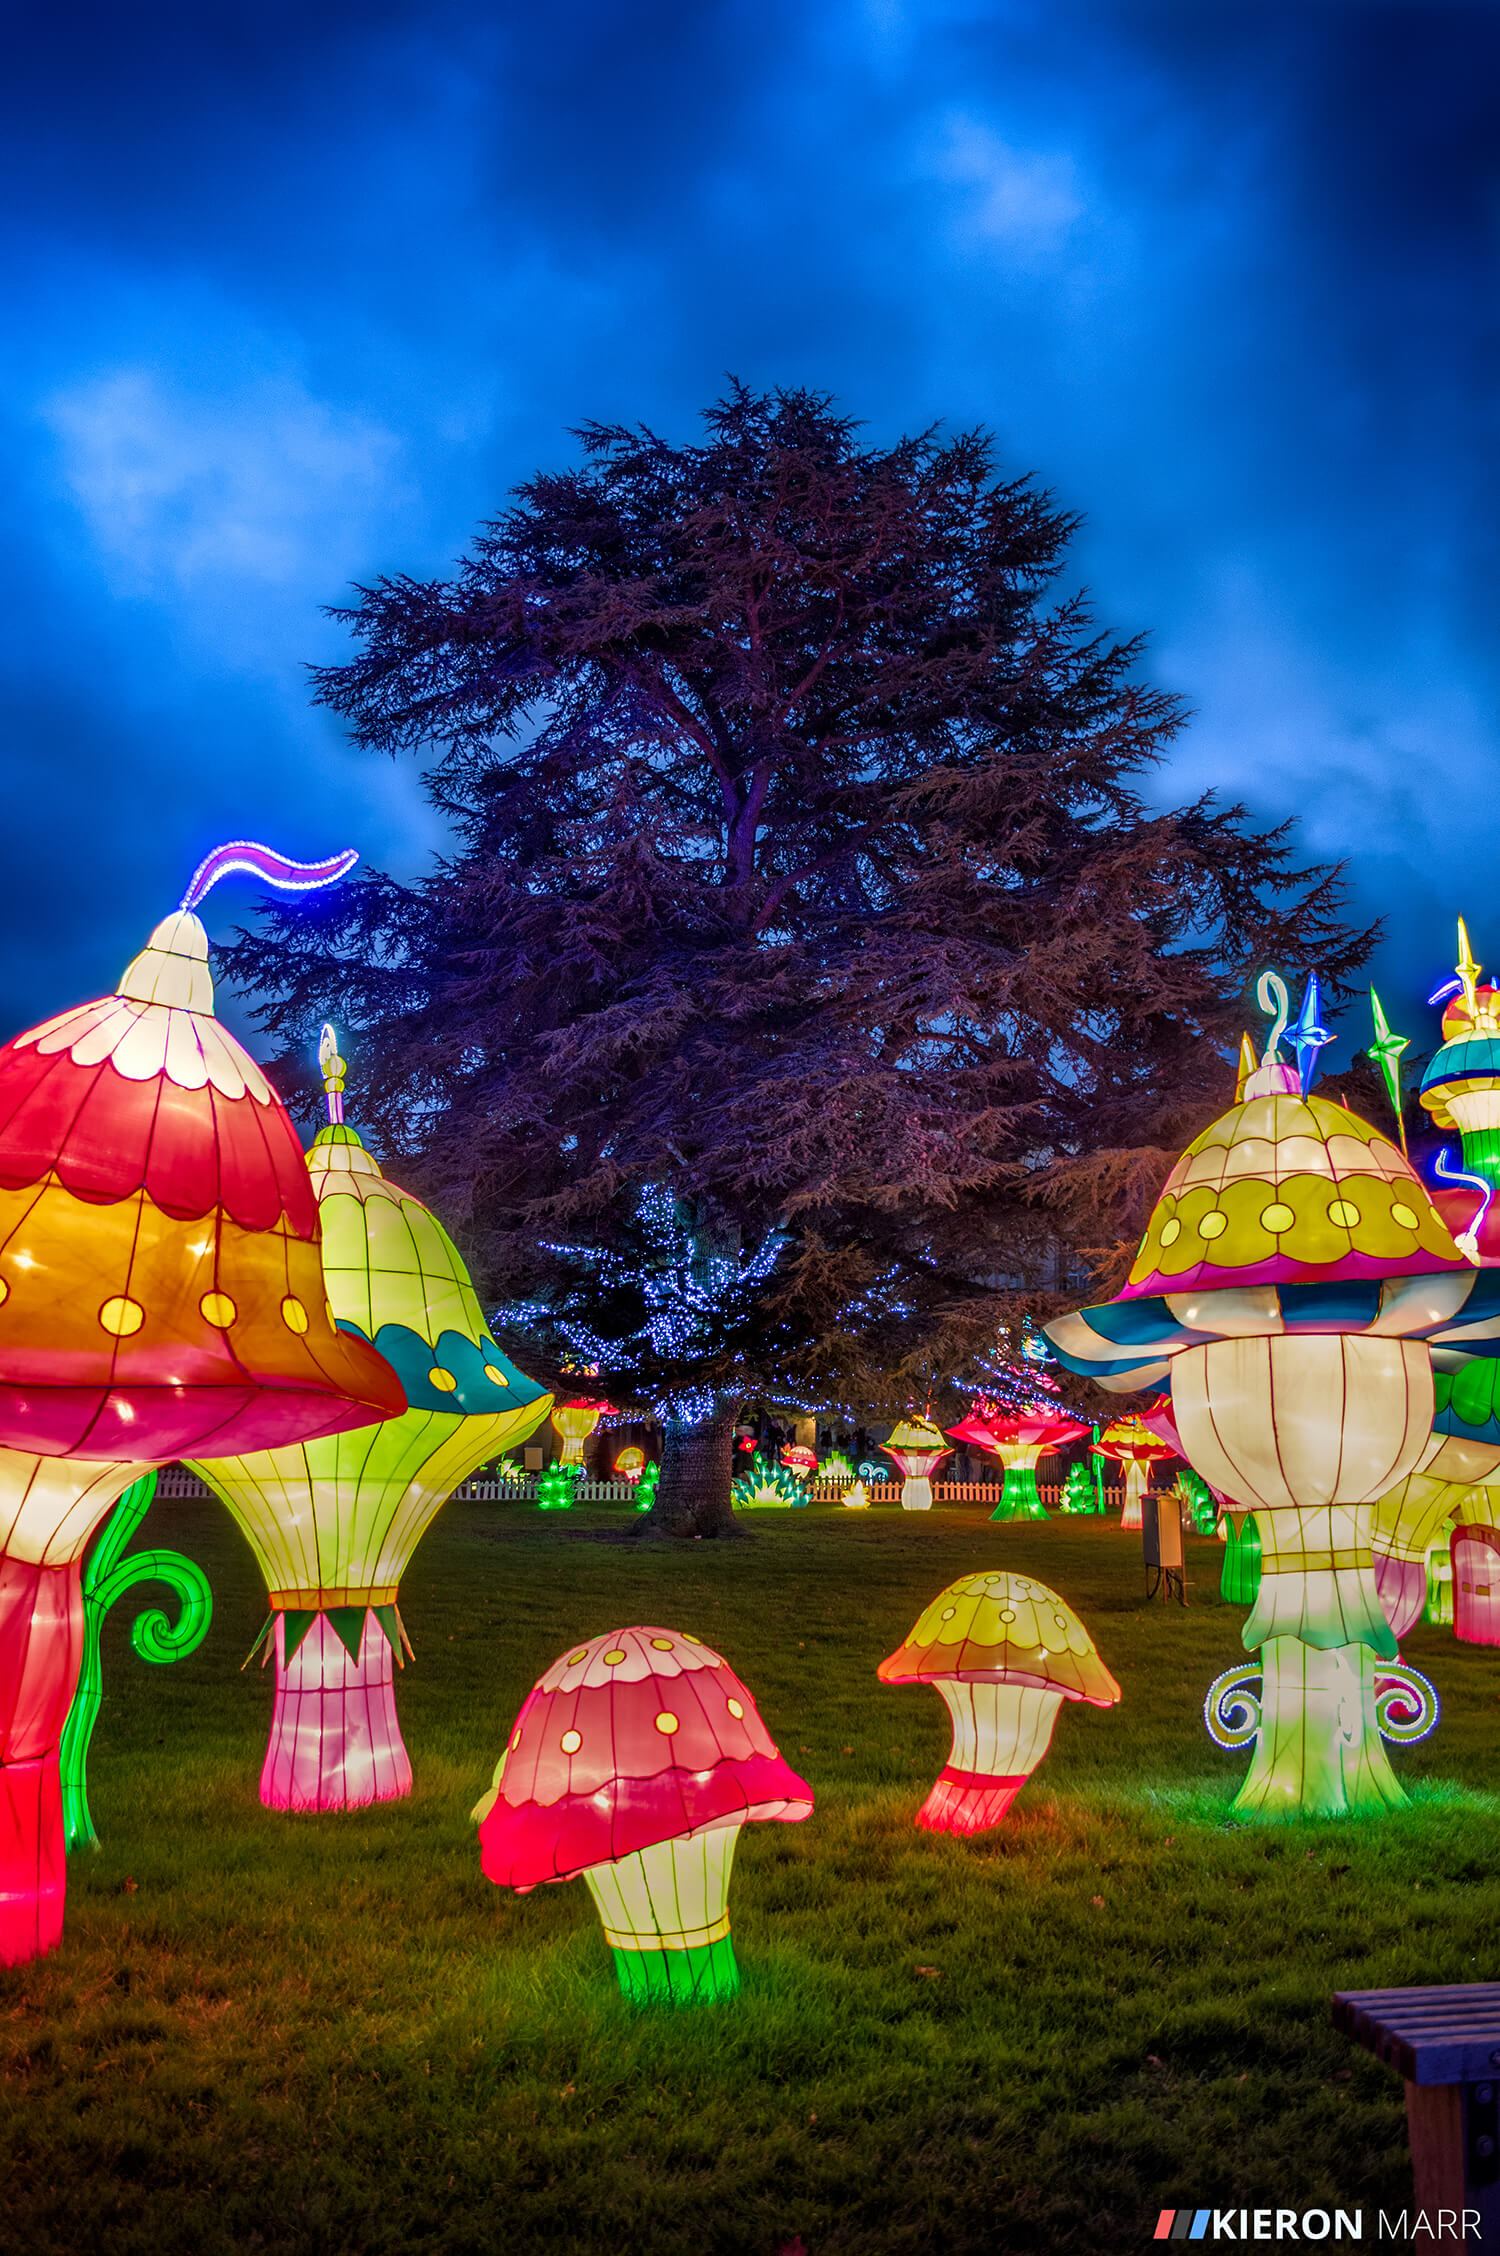 Longleat Festival of Light 2014 - Colourful Mushroom Garden